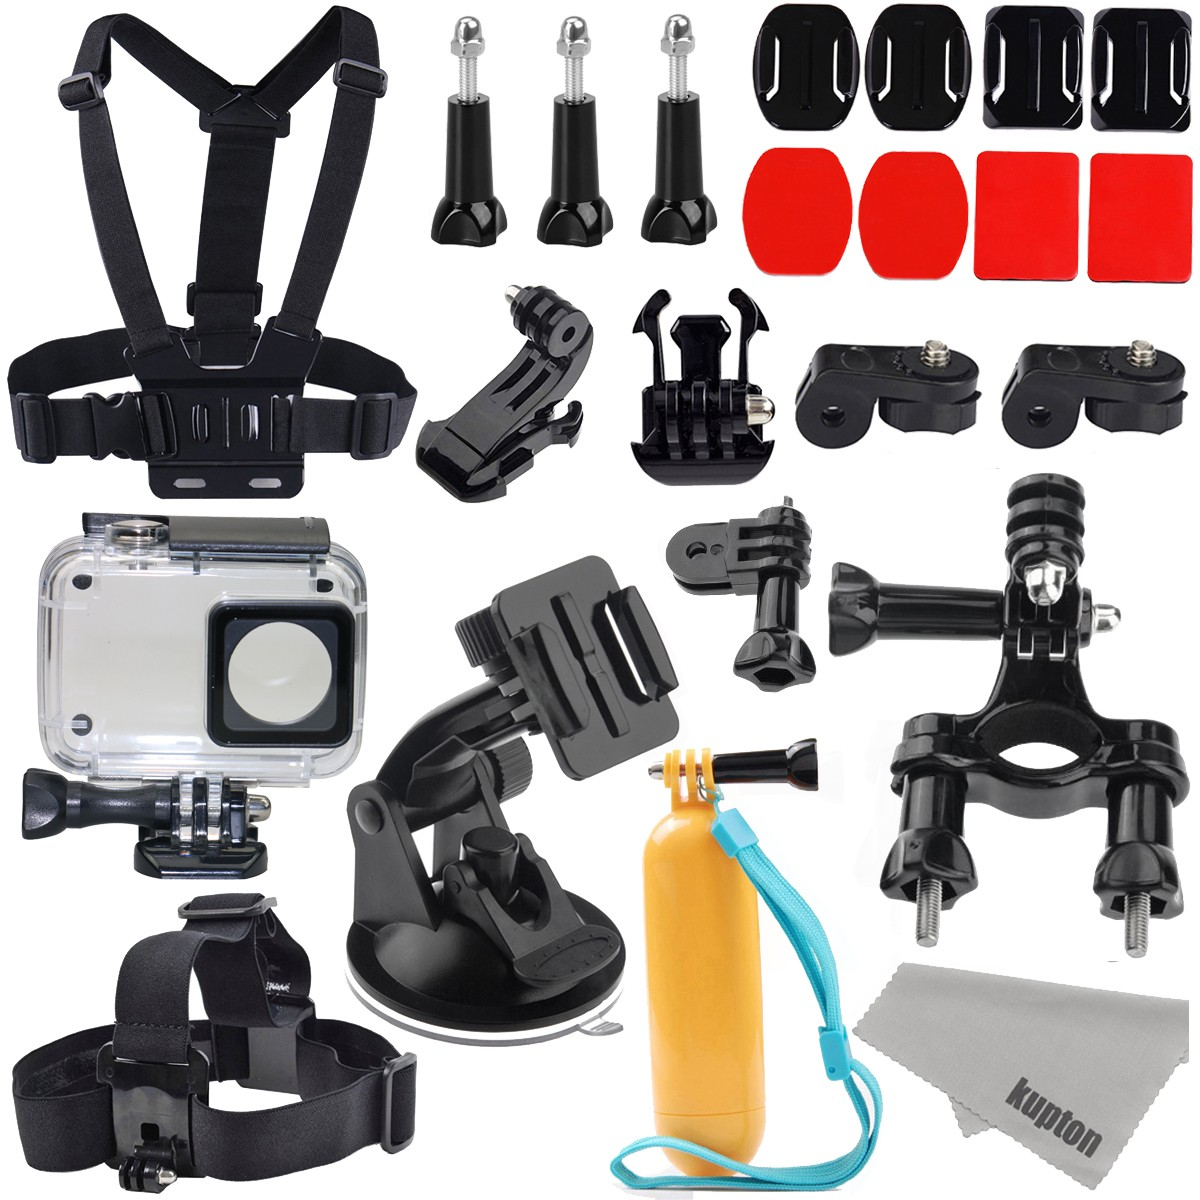 Xiaomi Yi 2/4K Accessories Kit, Kupton Xiaoyi 4K II Waterproof Housing Case+ Head Strap+ Chest Harness+ Car Suction Cup+ Bike Handlebar Mount+ Floaty Handle Action Camera Starter Kit